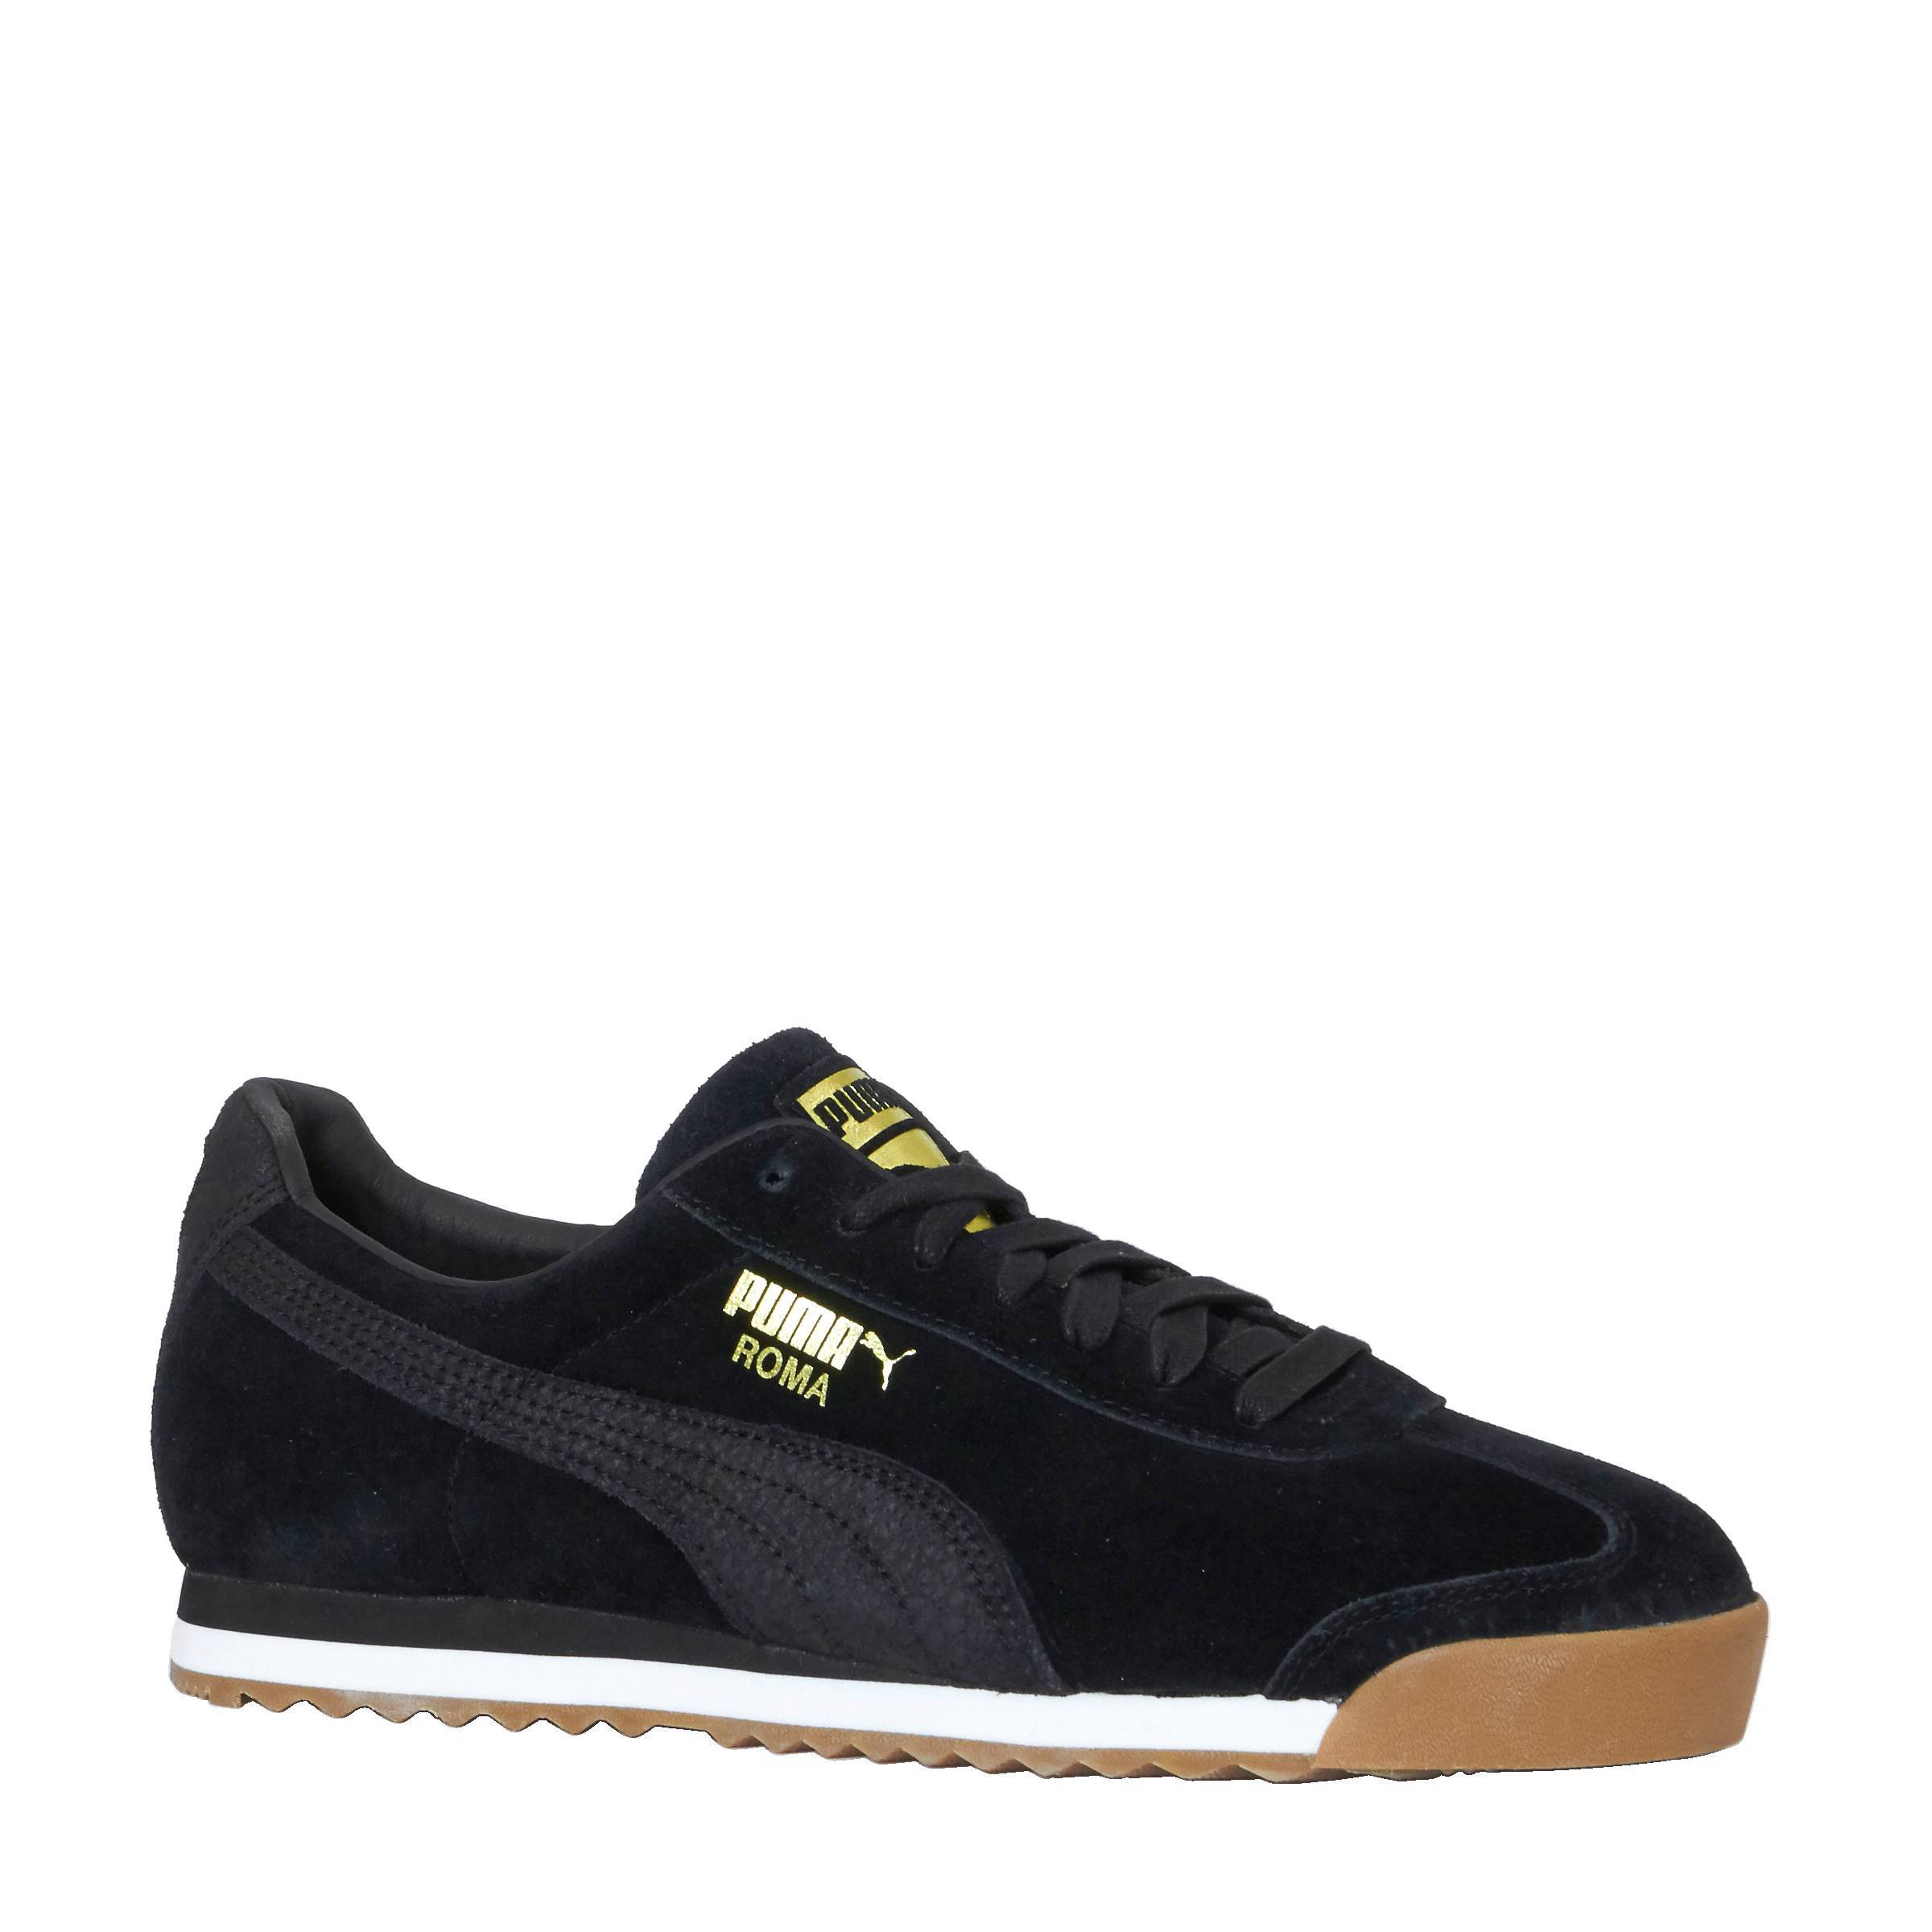 Zwarte PUMA Sneakers ROMA NATURAL WARMTH | Omoda